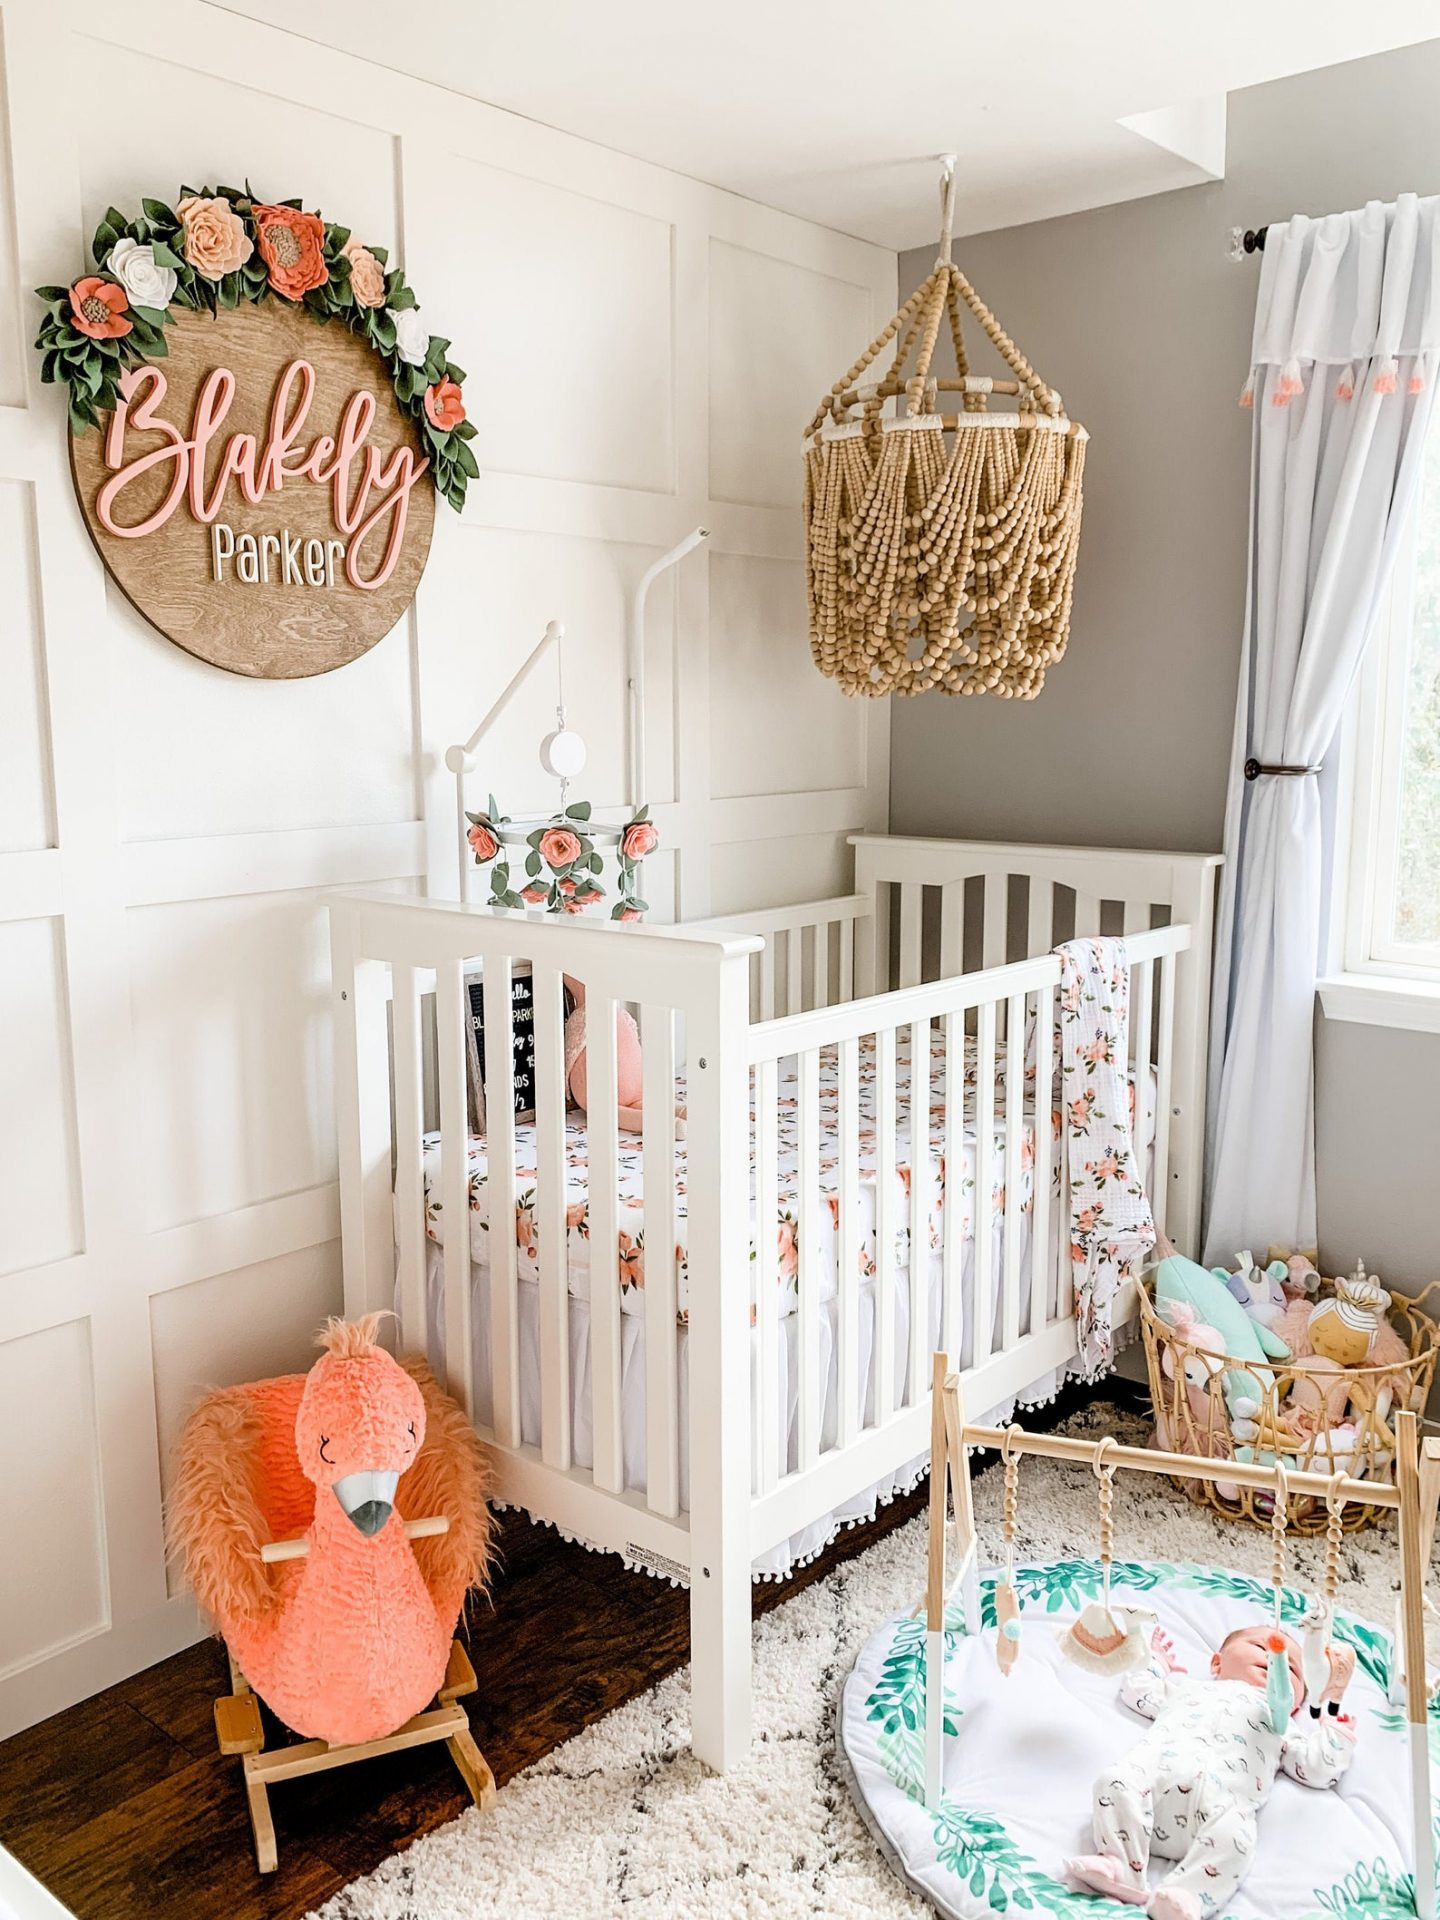 Floral and wooden personalized nursery name sign